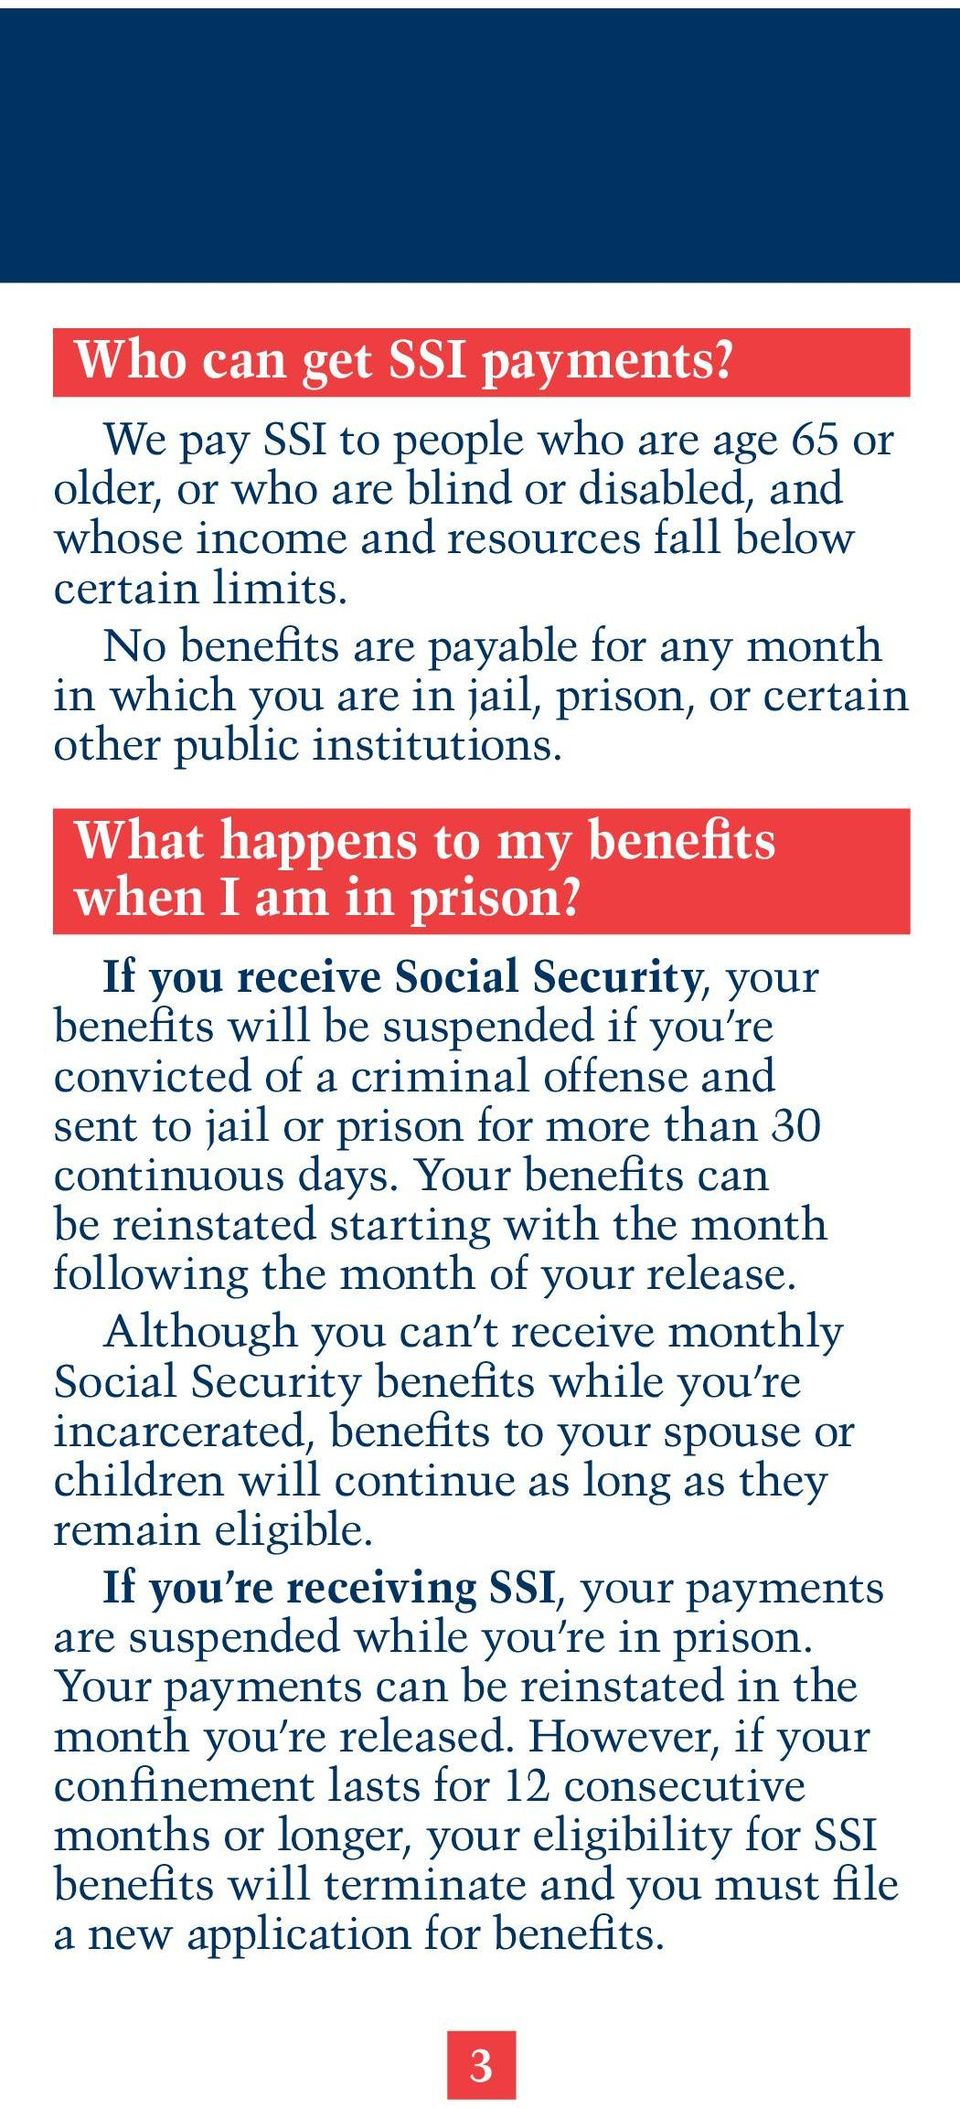 If you receive Social Security, your benefits will be suspended if you re convicted of a criminal offense and sent to jail or prison for more than 30 continuous days.